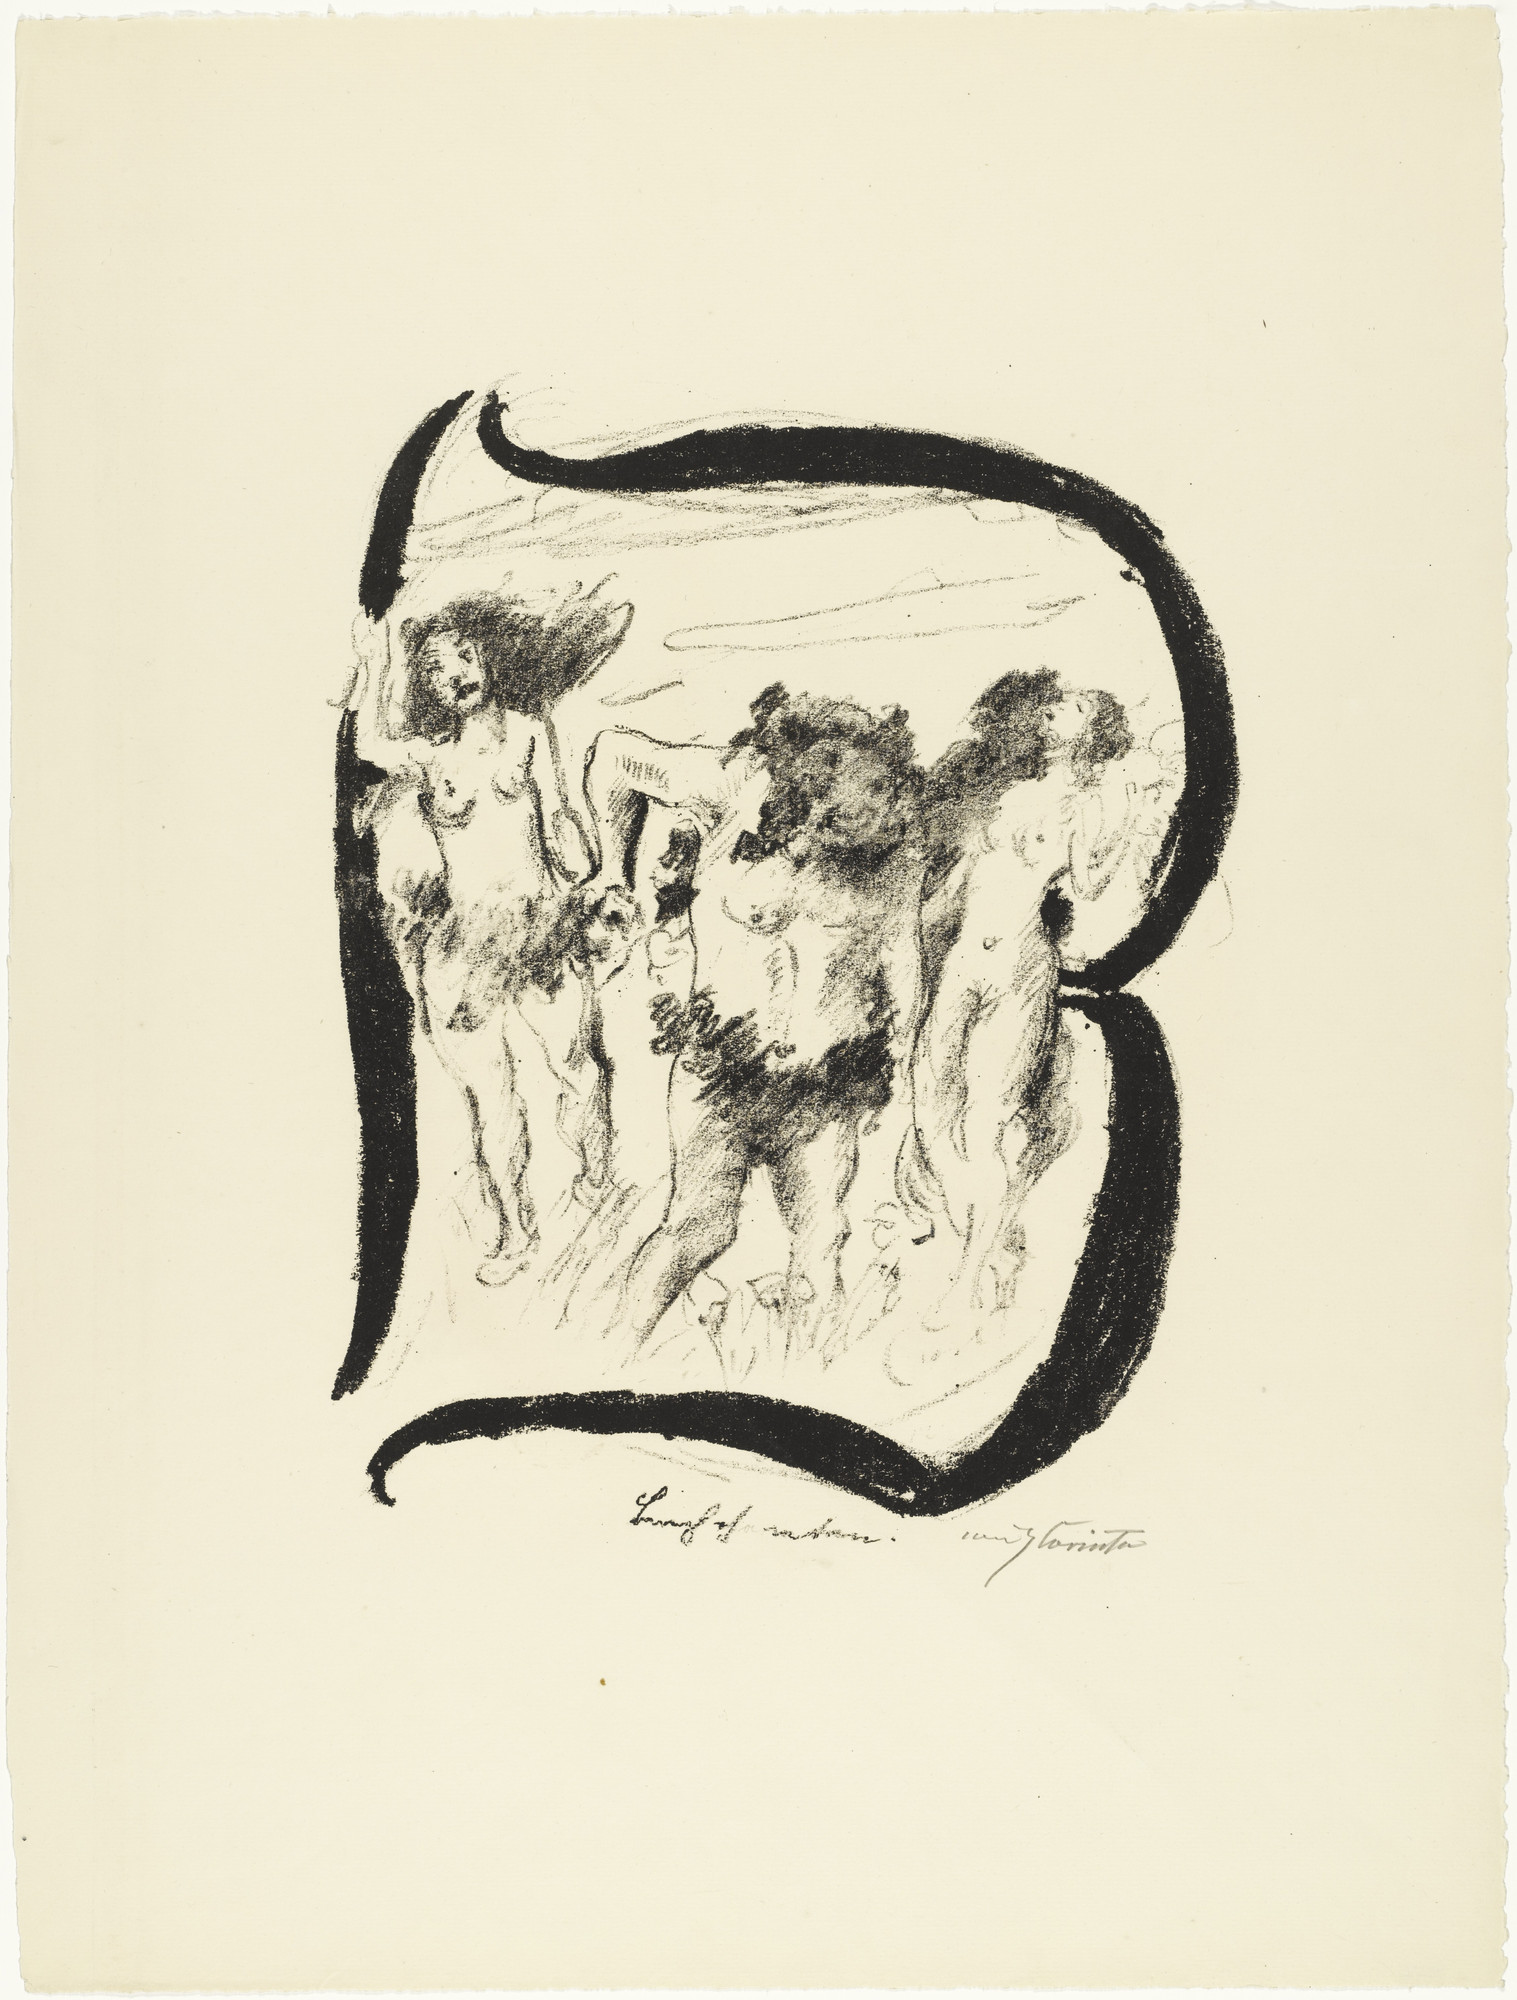 Lovis Corinth. Letter B (Buchstabe B) from the illustrated book in portfolio form The ABCs (Das ABC). (1916, published 1917)